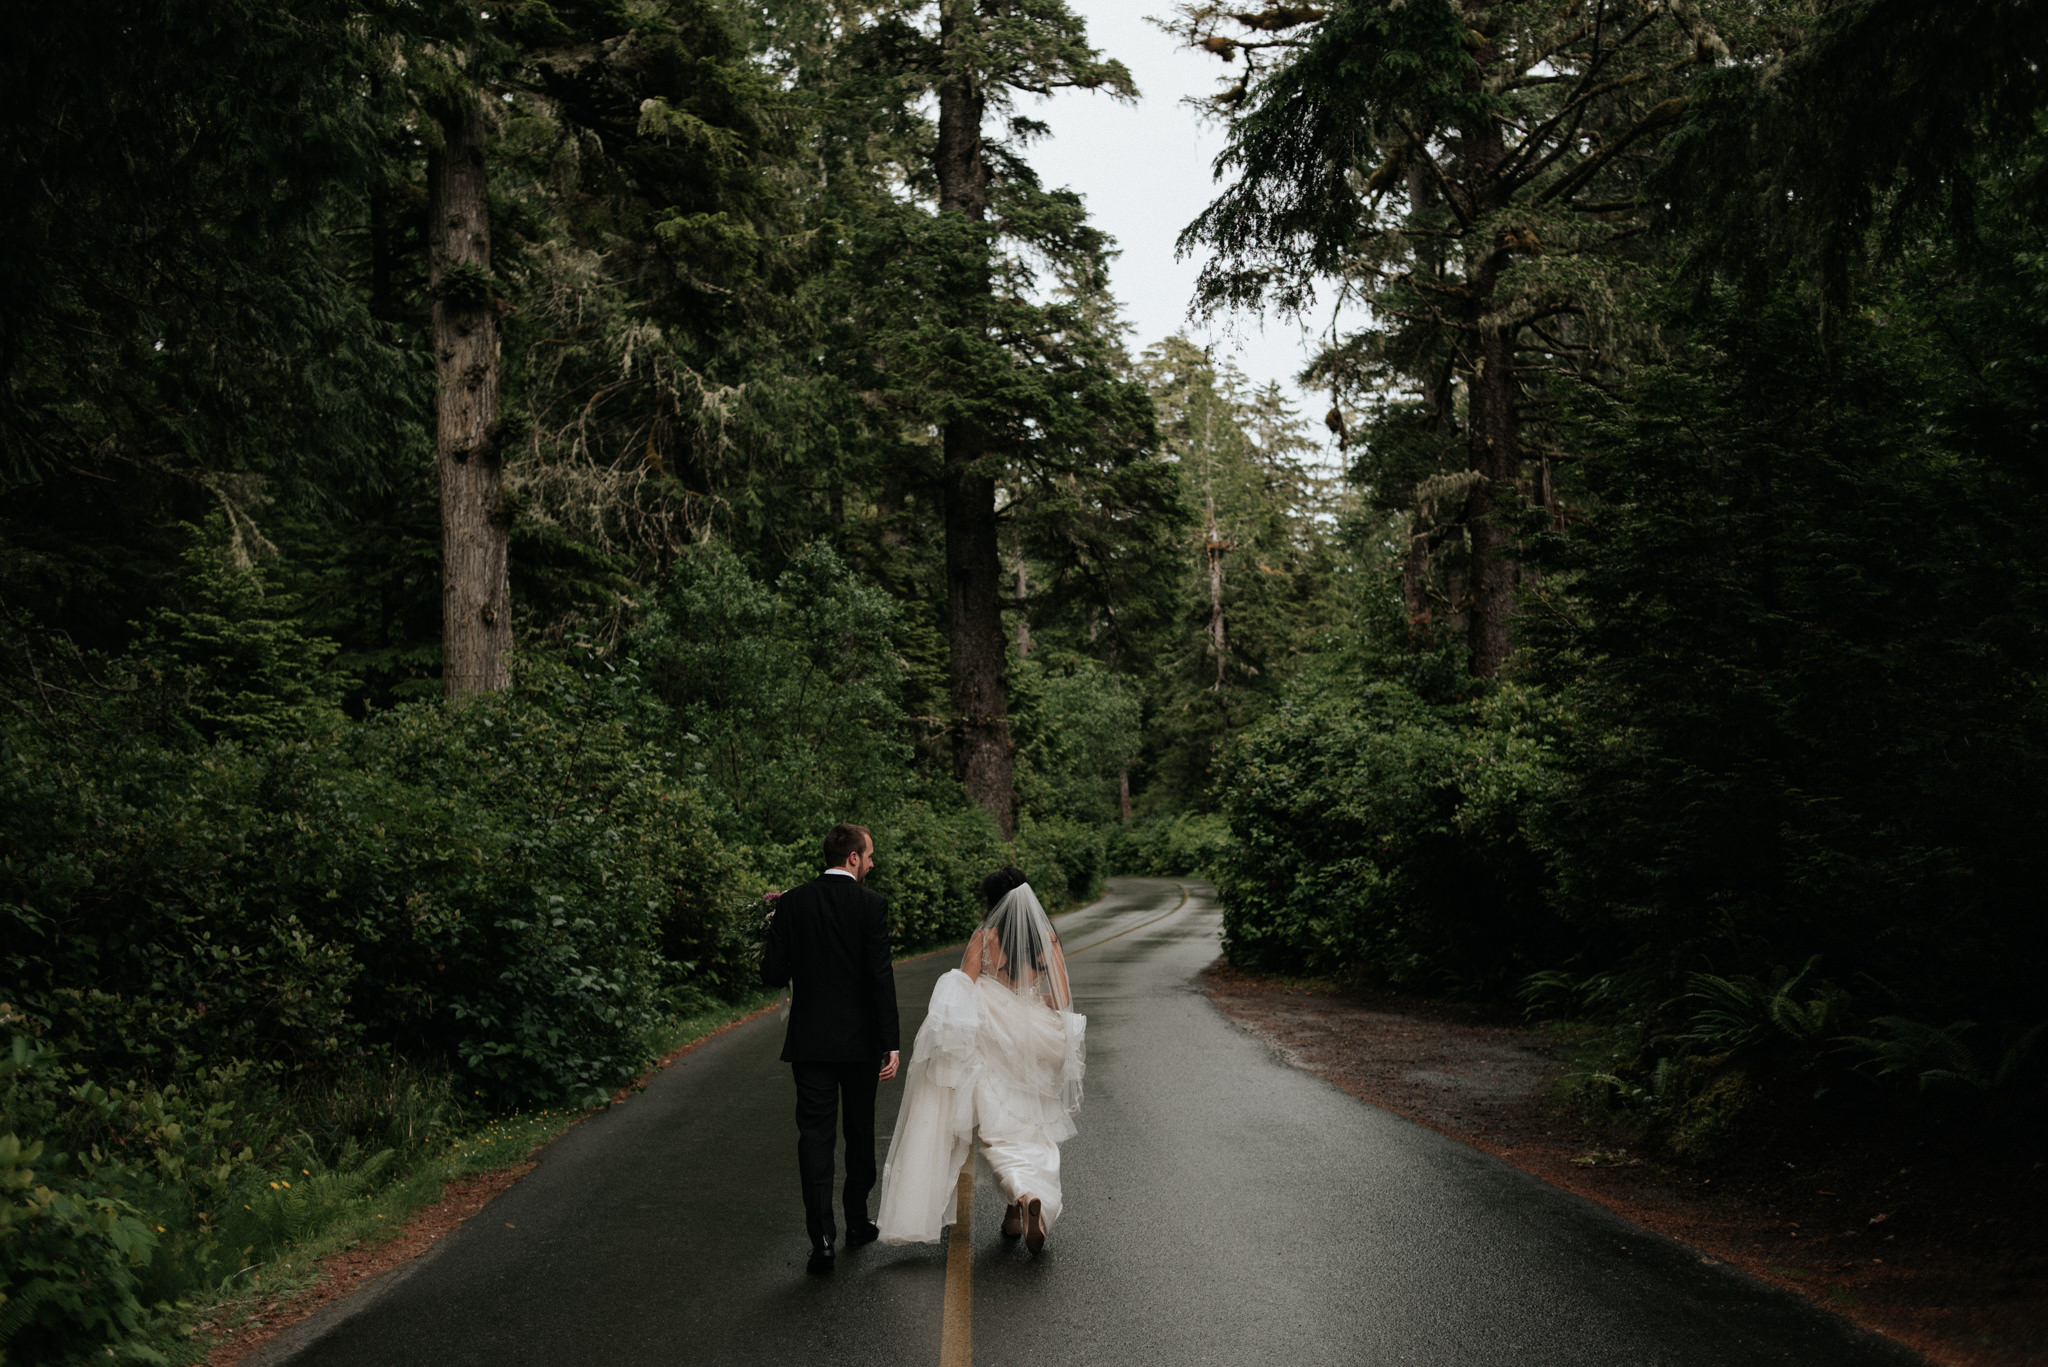 bride and groom walking down road surrounded by forest in Tofino